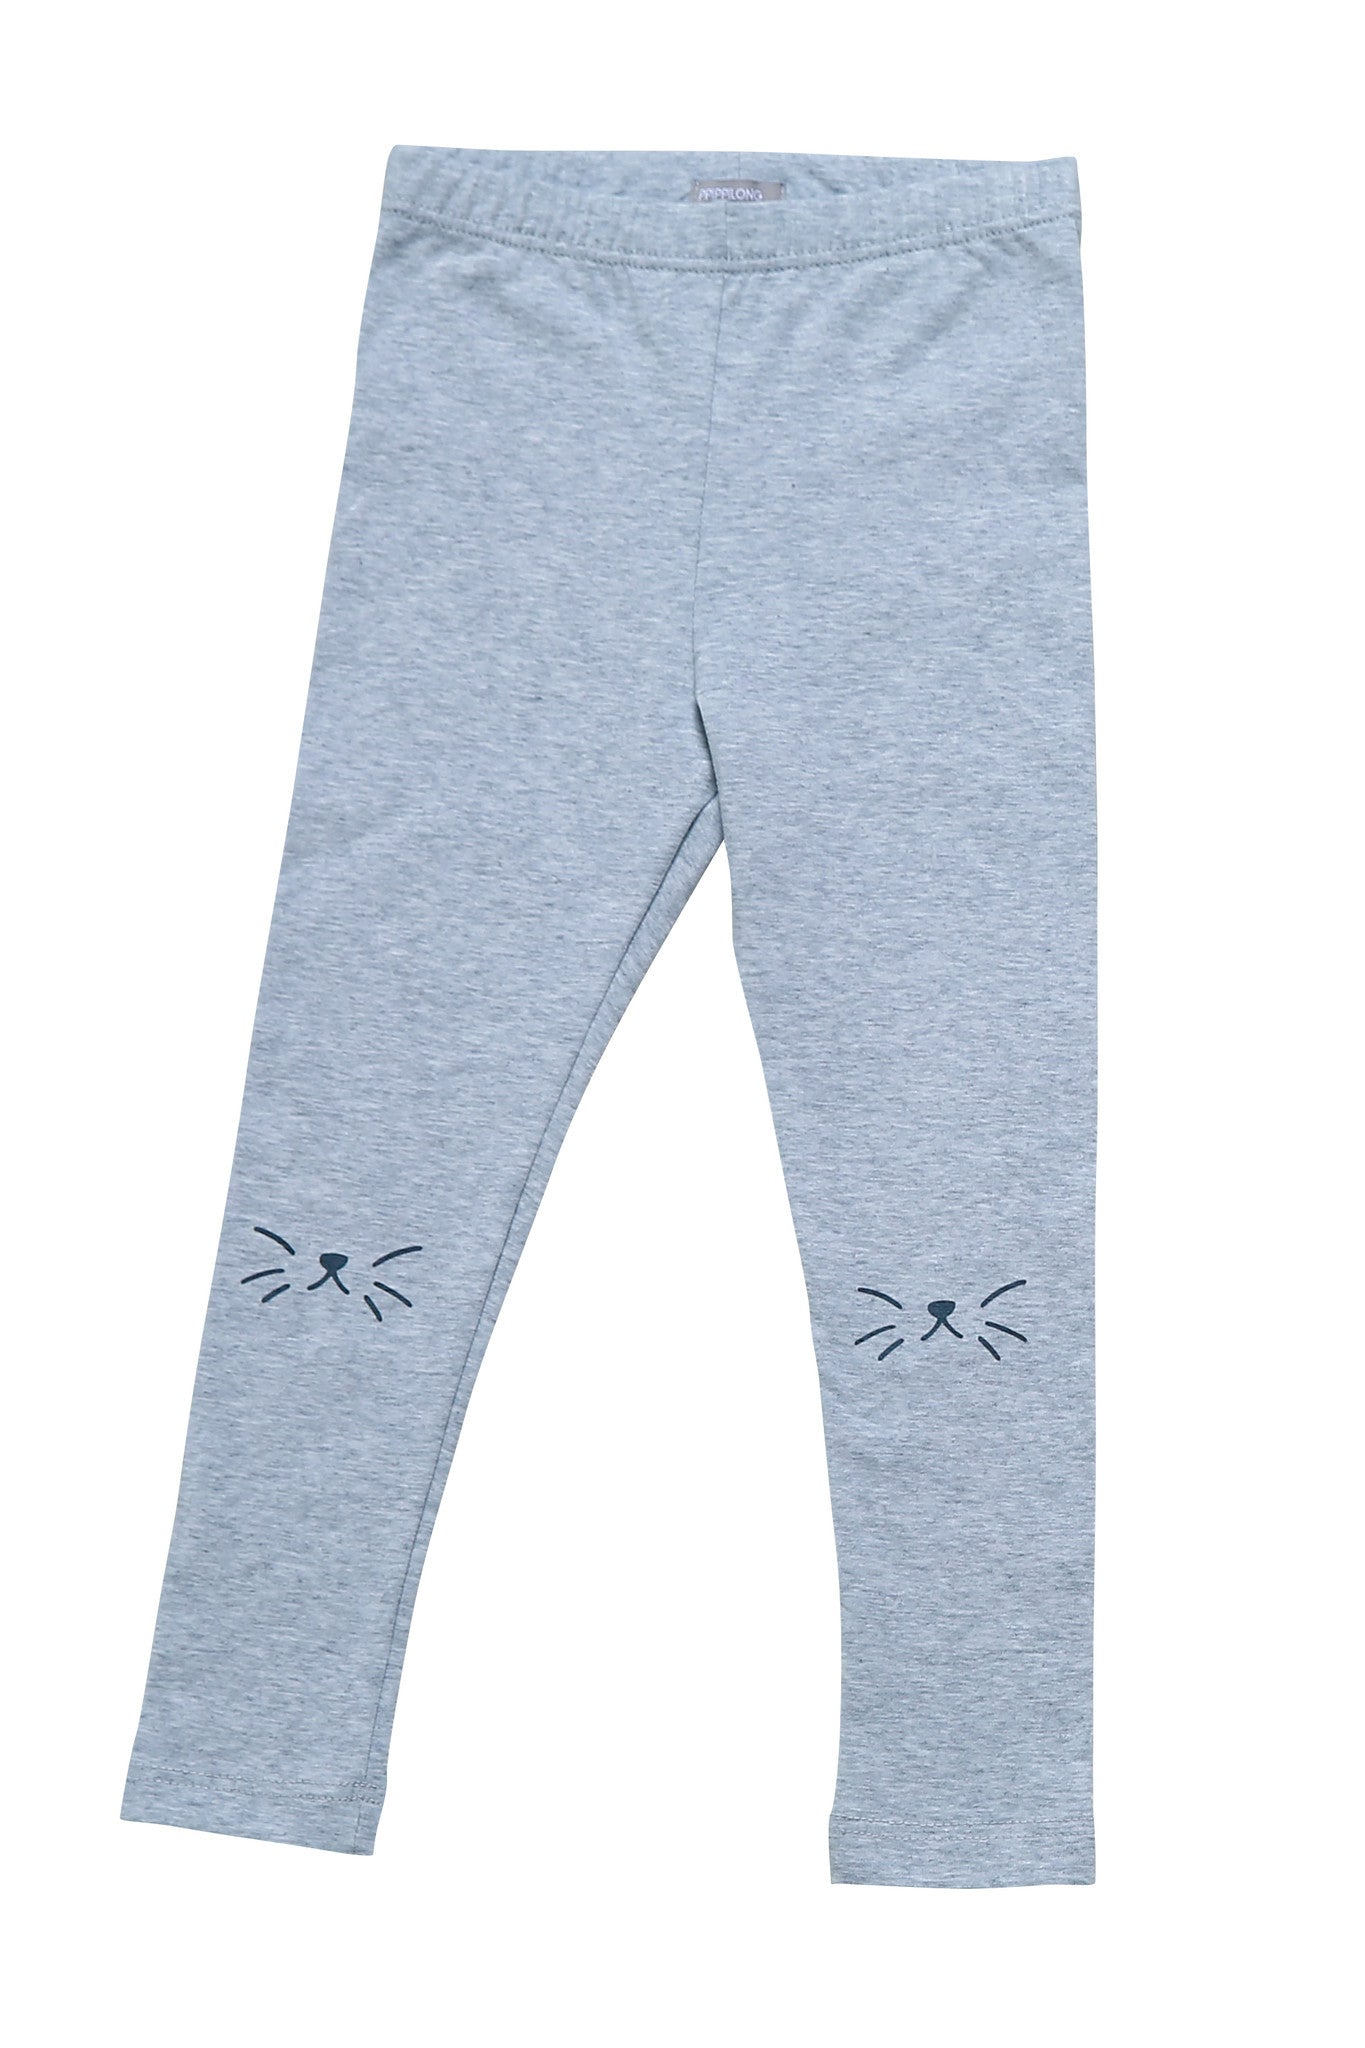 Leggings - Cat Whiskers Leggings Grey